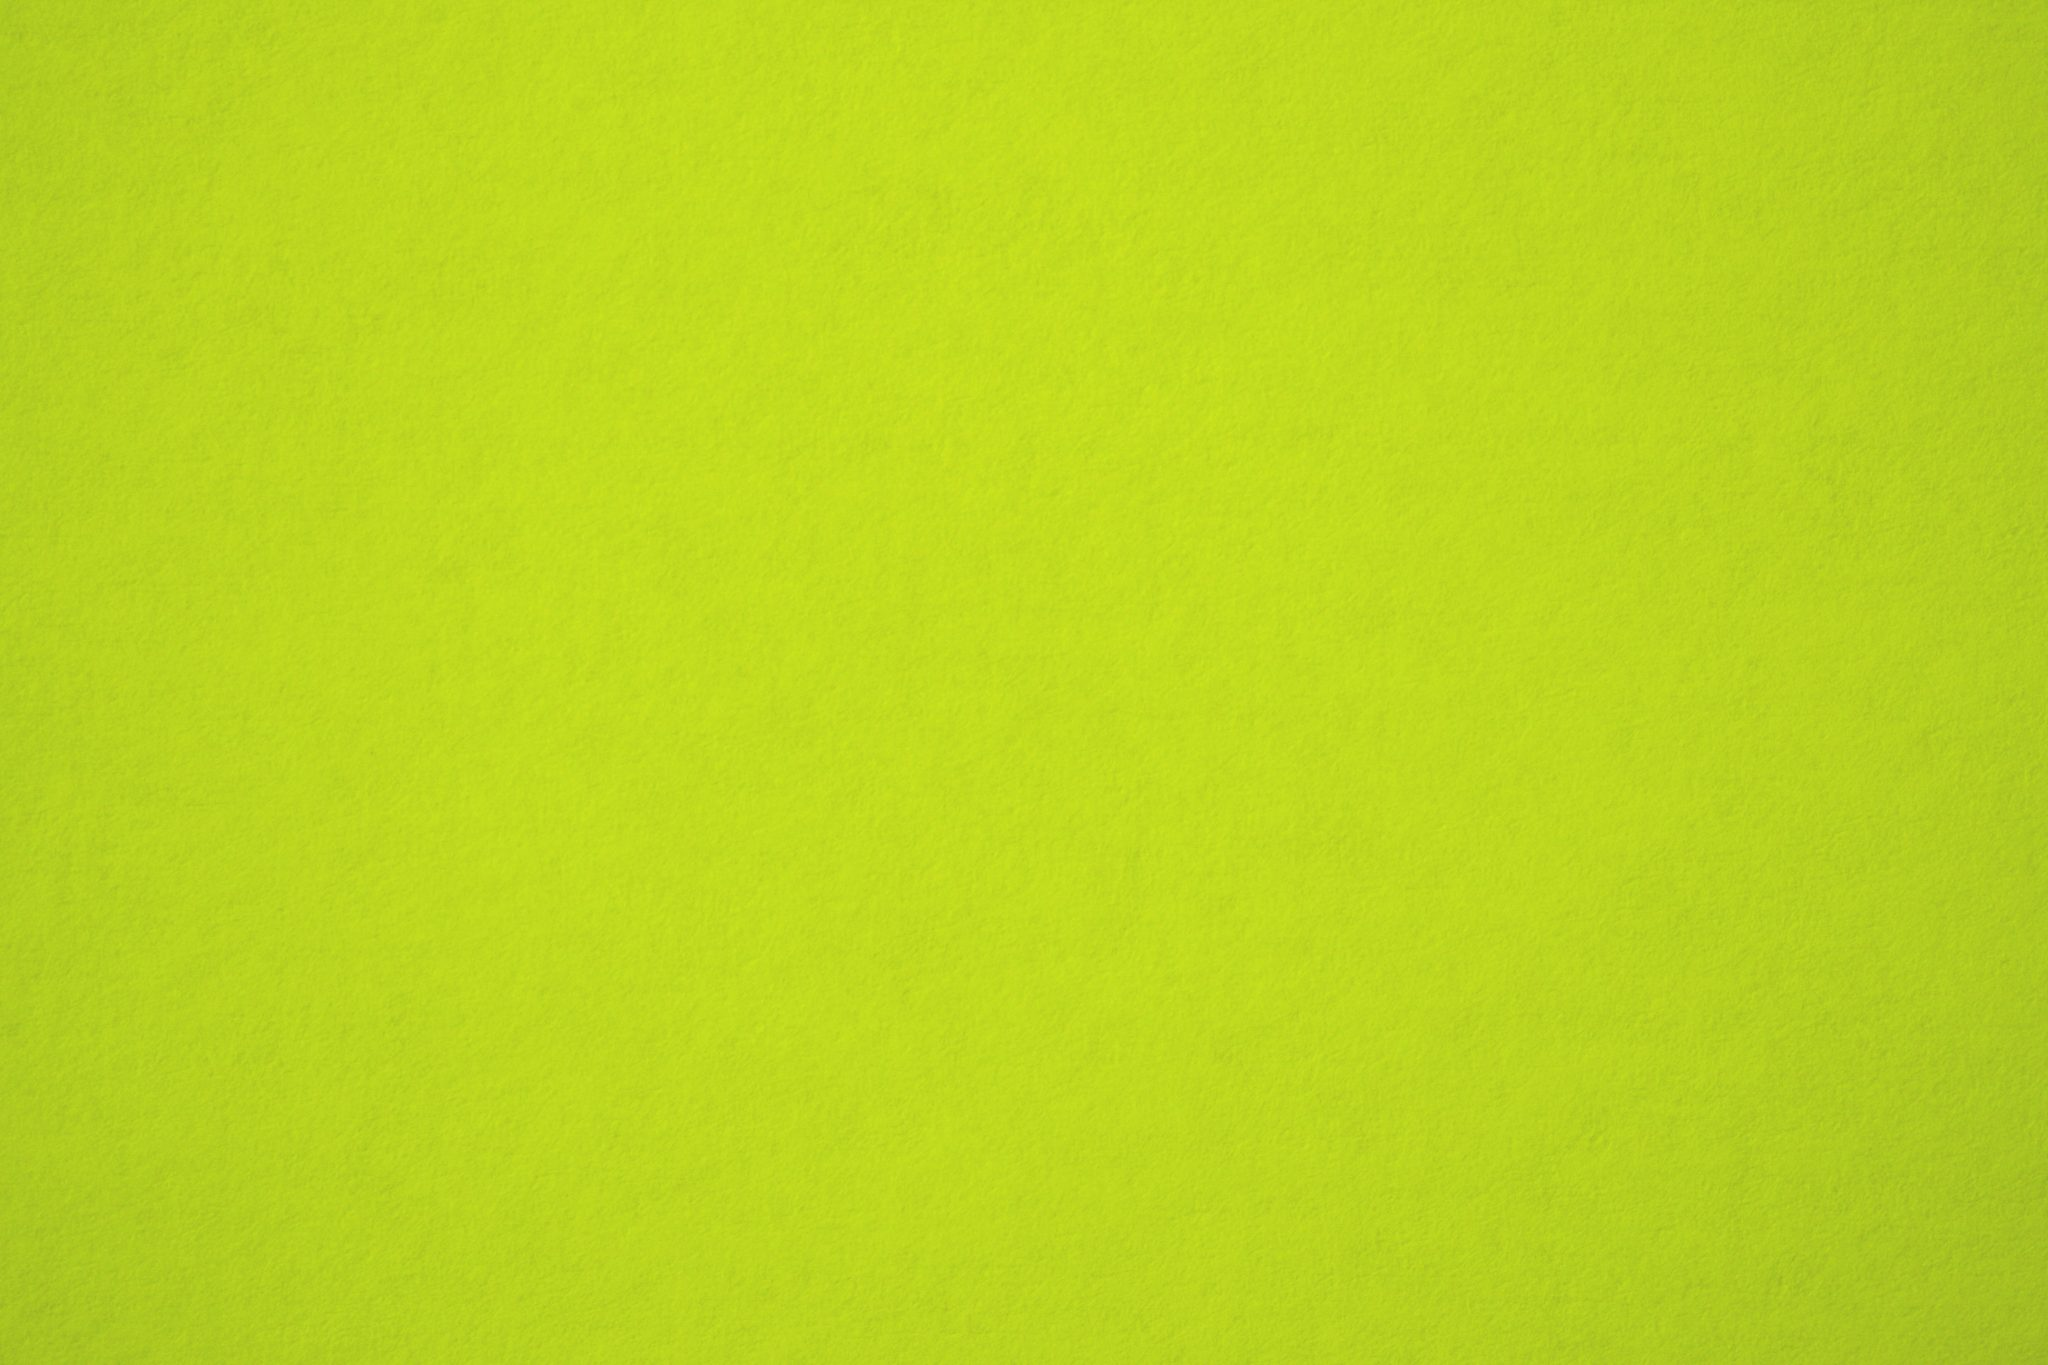 lime-green-paper-texture_2